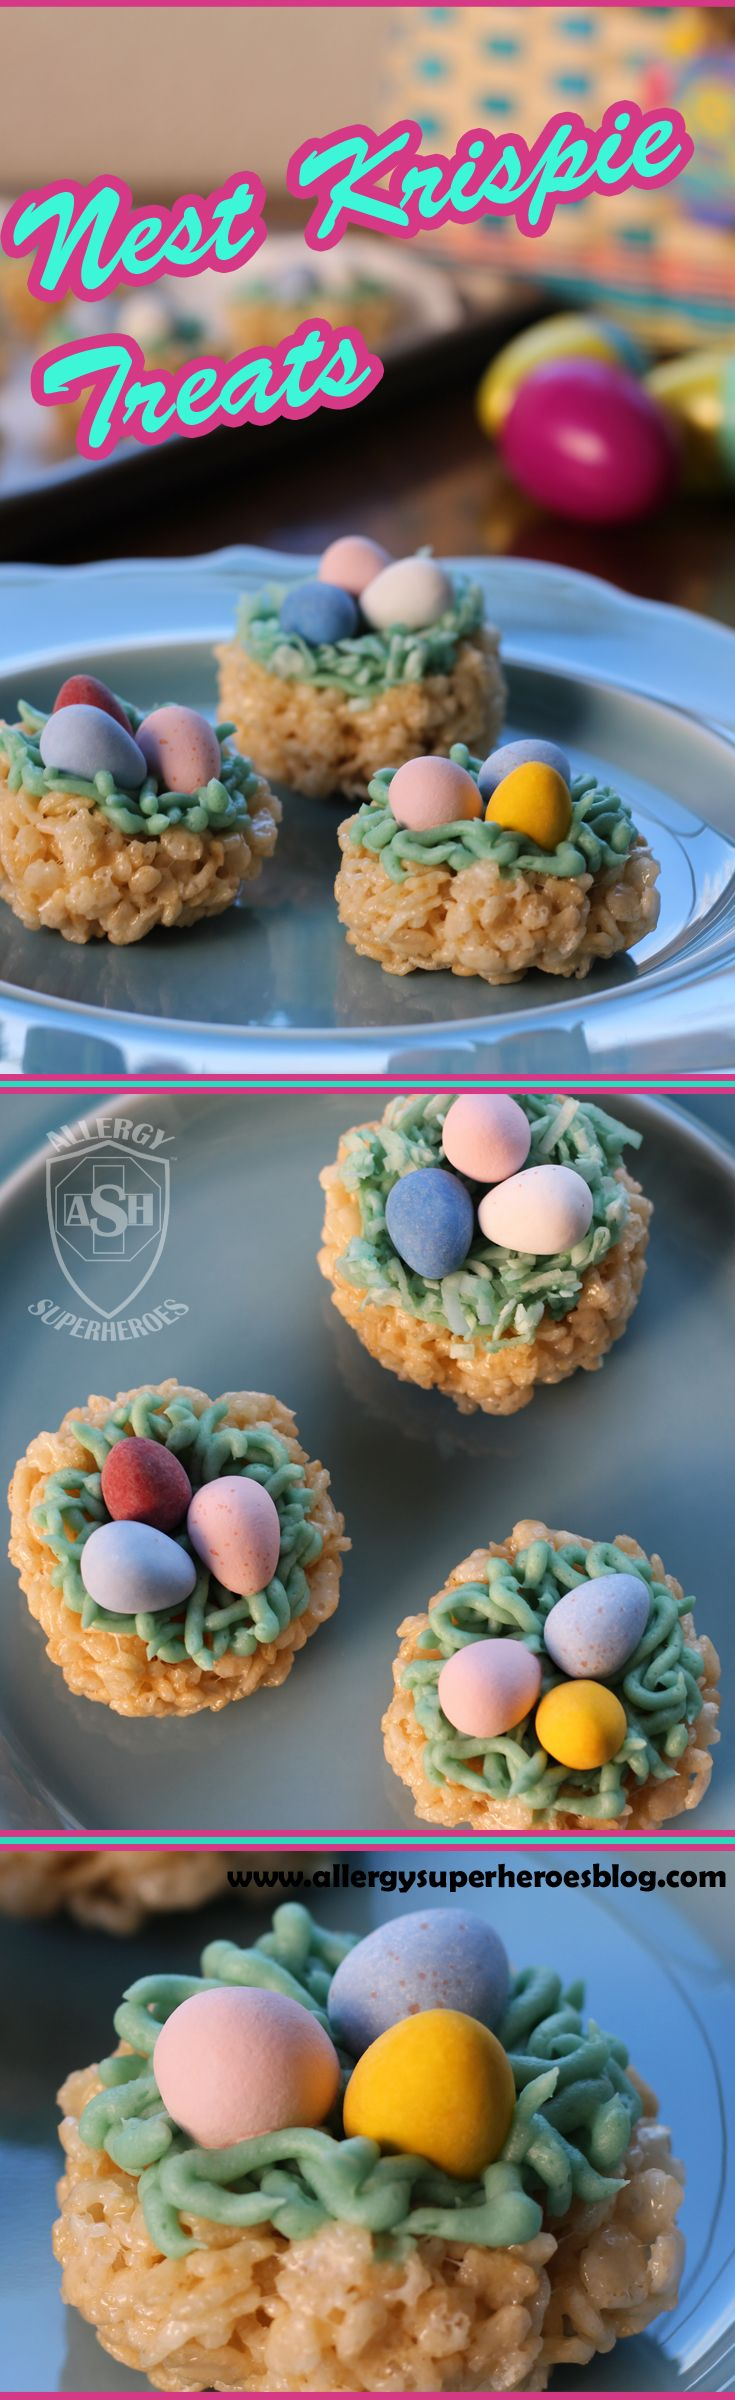 Nest Krispie Treats, the Perfect Easter Dessert! | Allergy Superheroes. Contains gluten (but not wheat) and corn. Free from peanuts, tree nuts, egg, dairy, soy, wheat, fish, shellfish, and seeds.